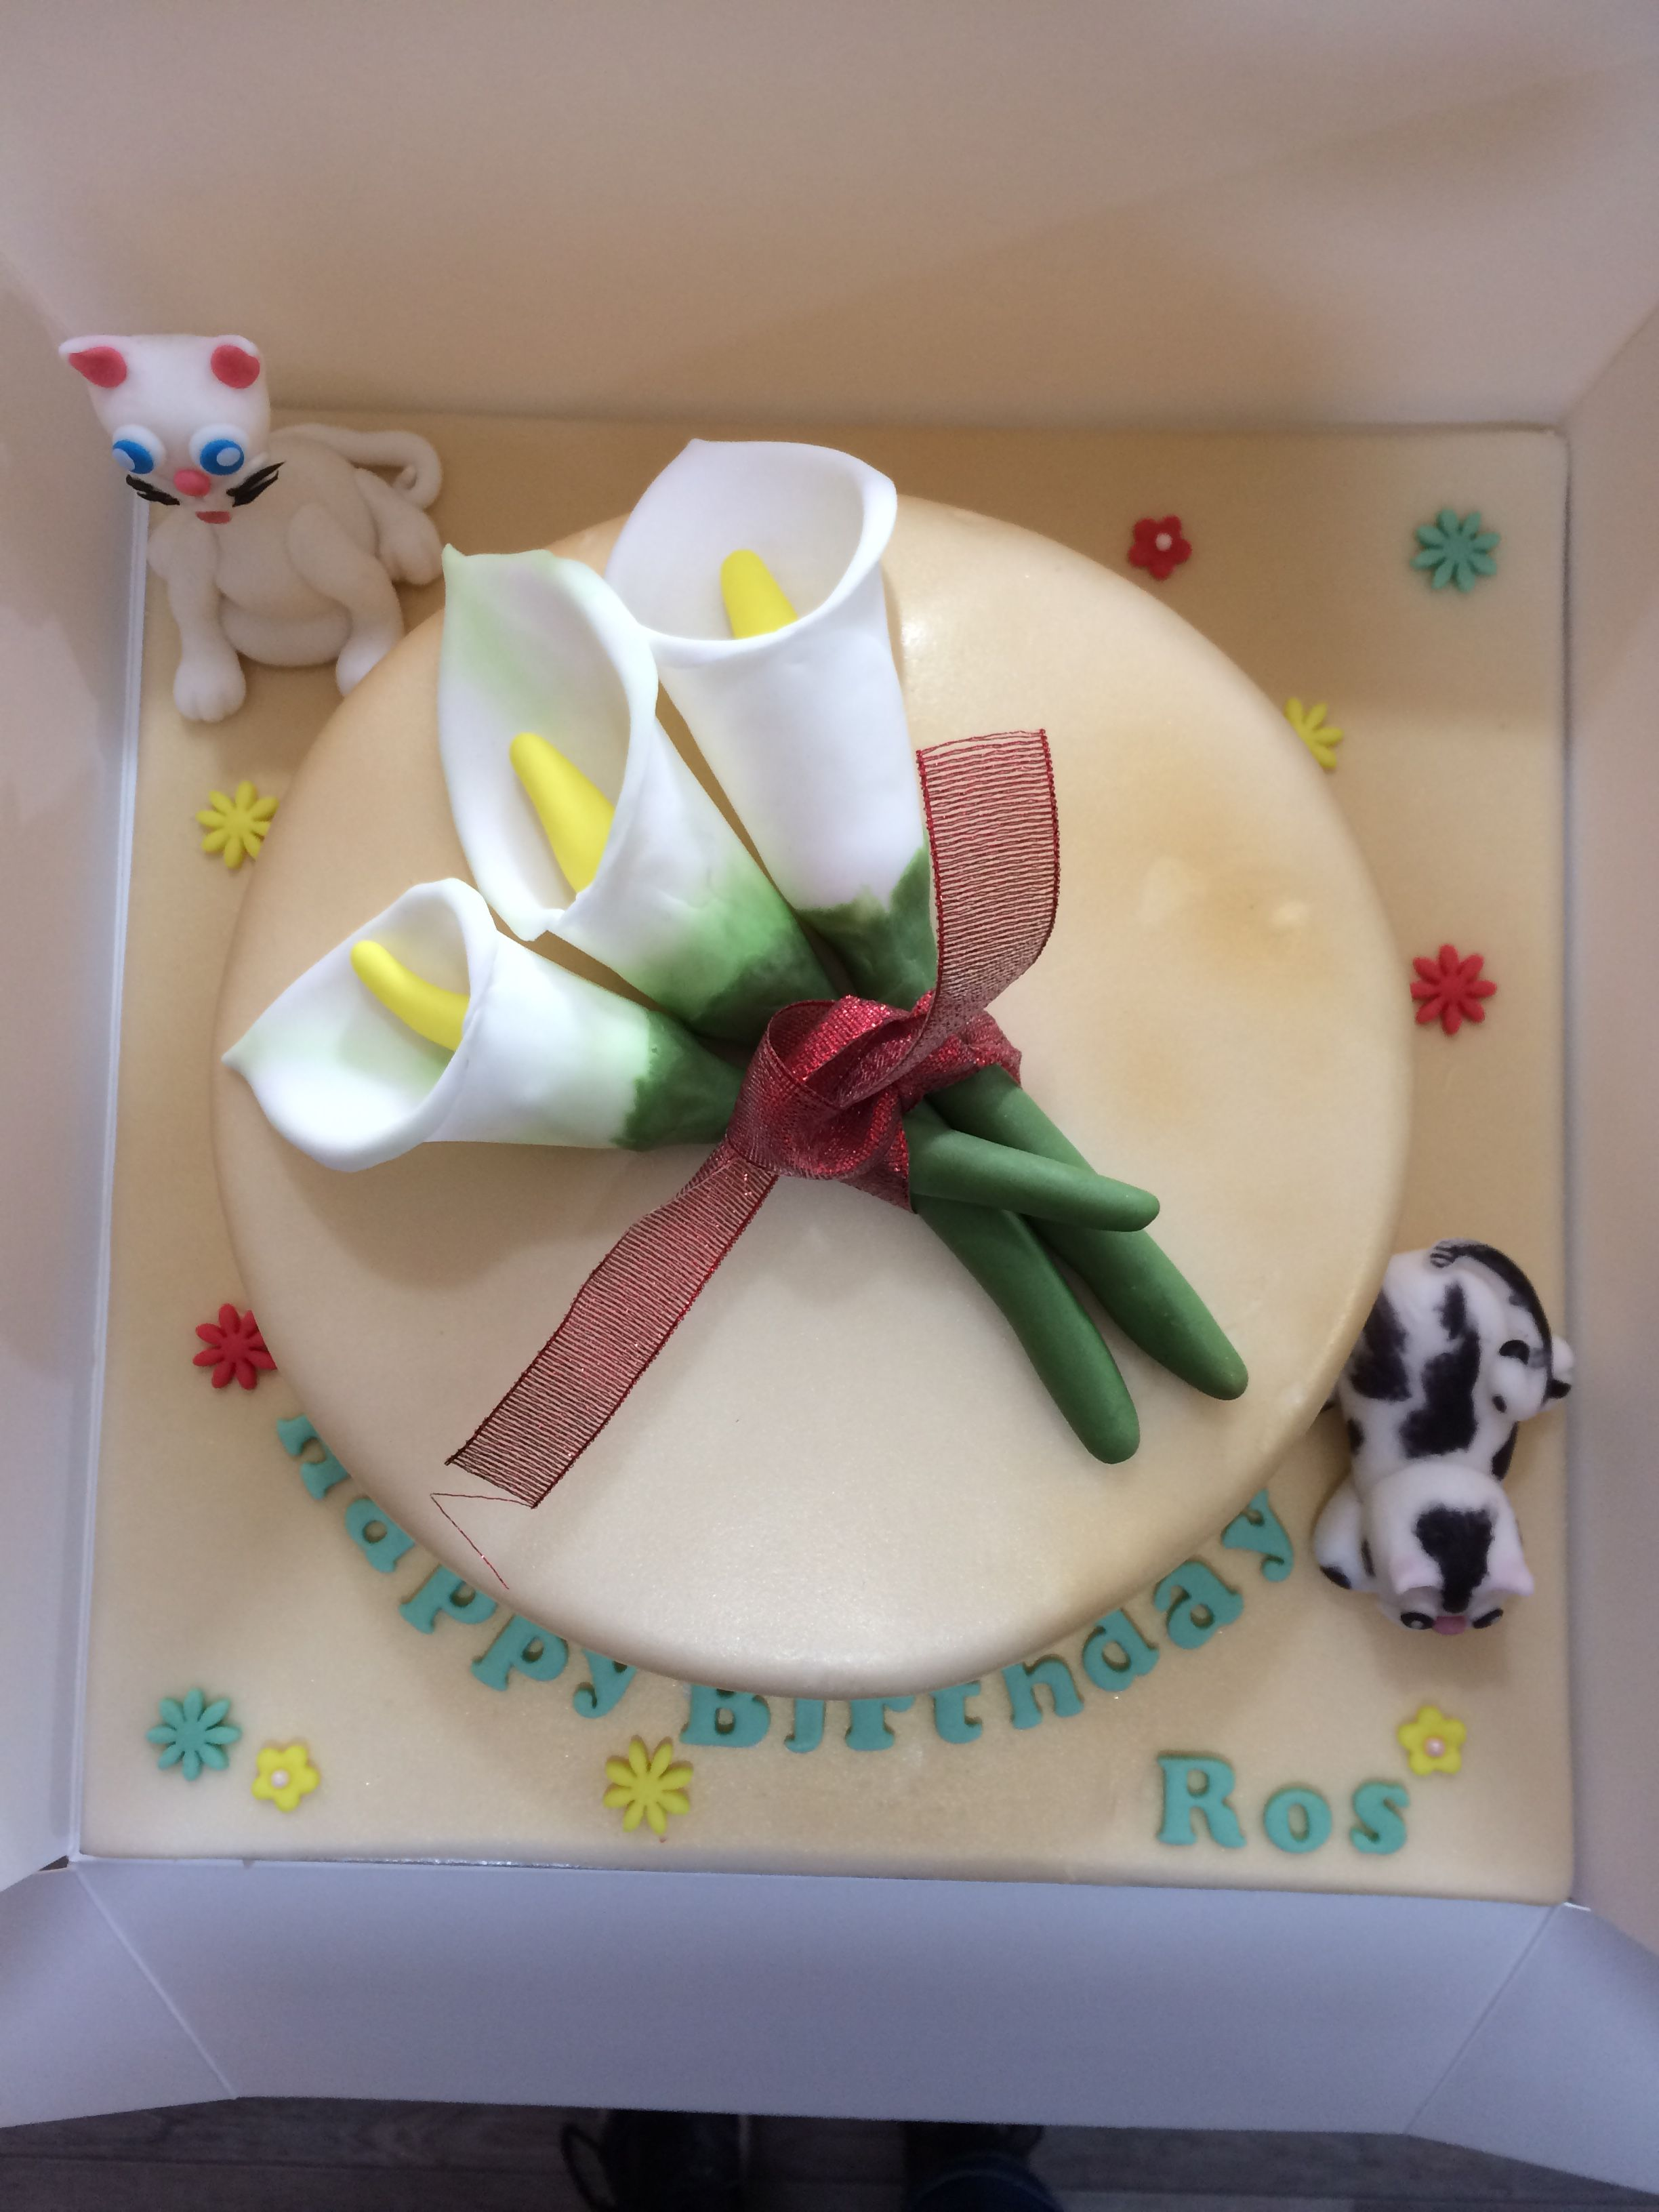 arum lily & cat cake (With images) Cat cake, Lily cat